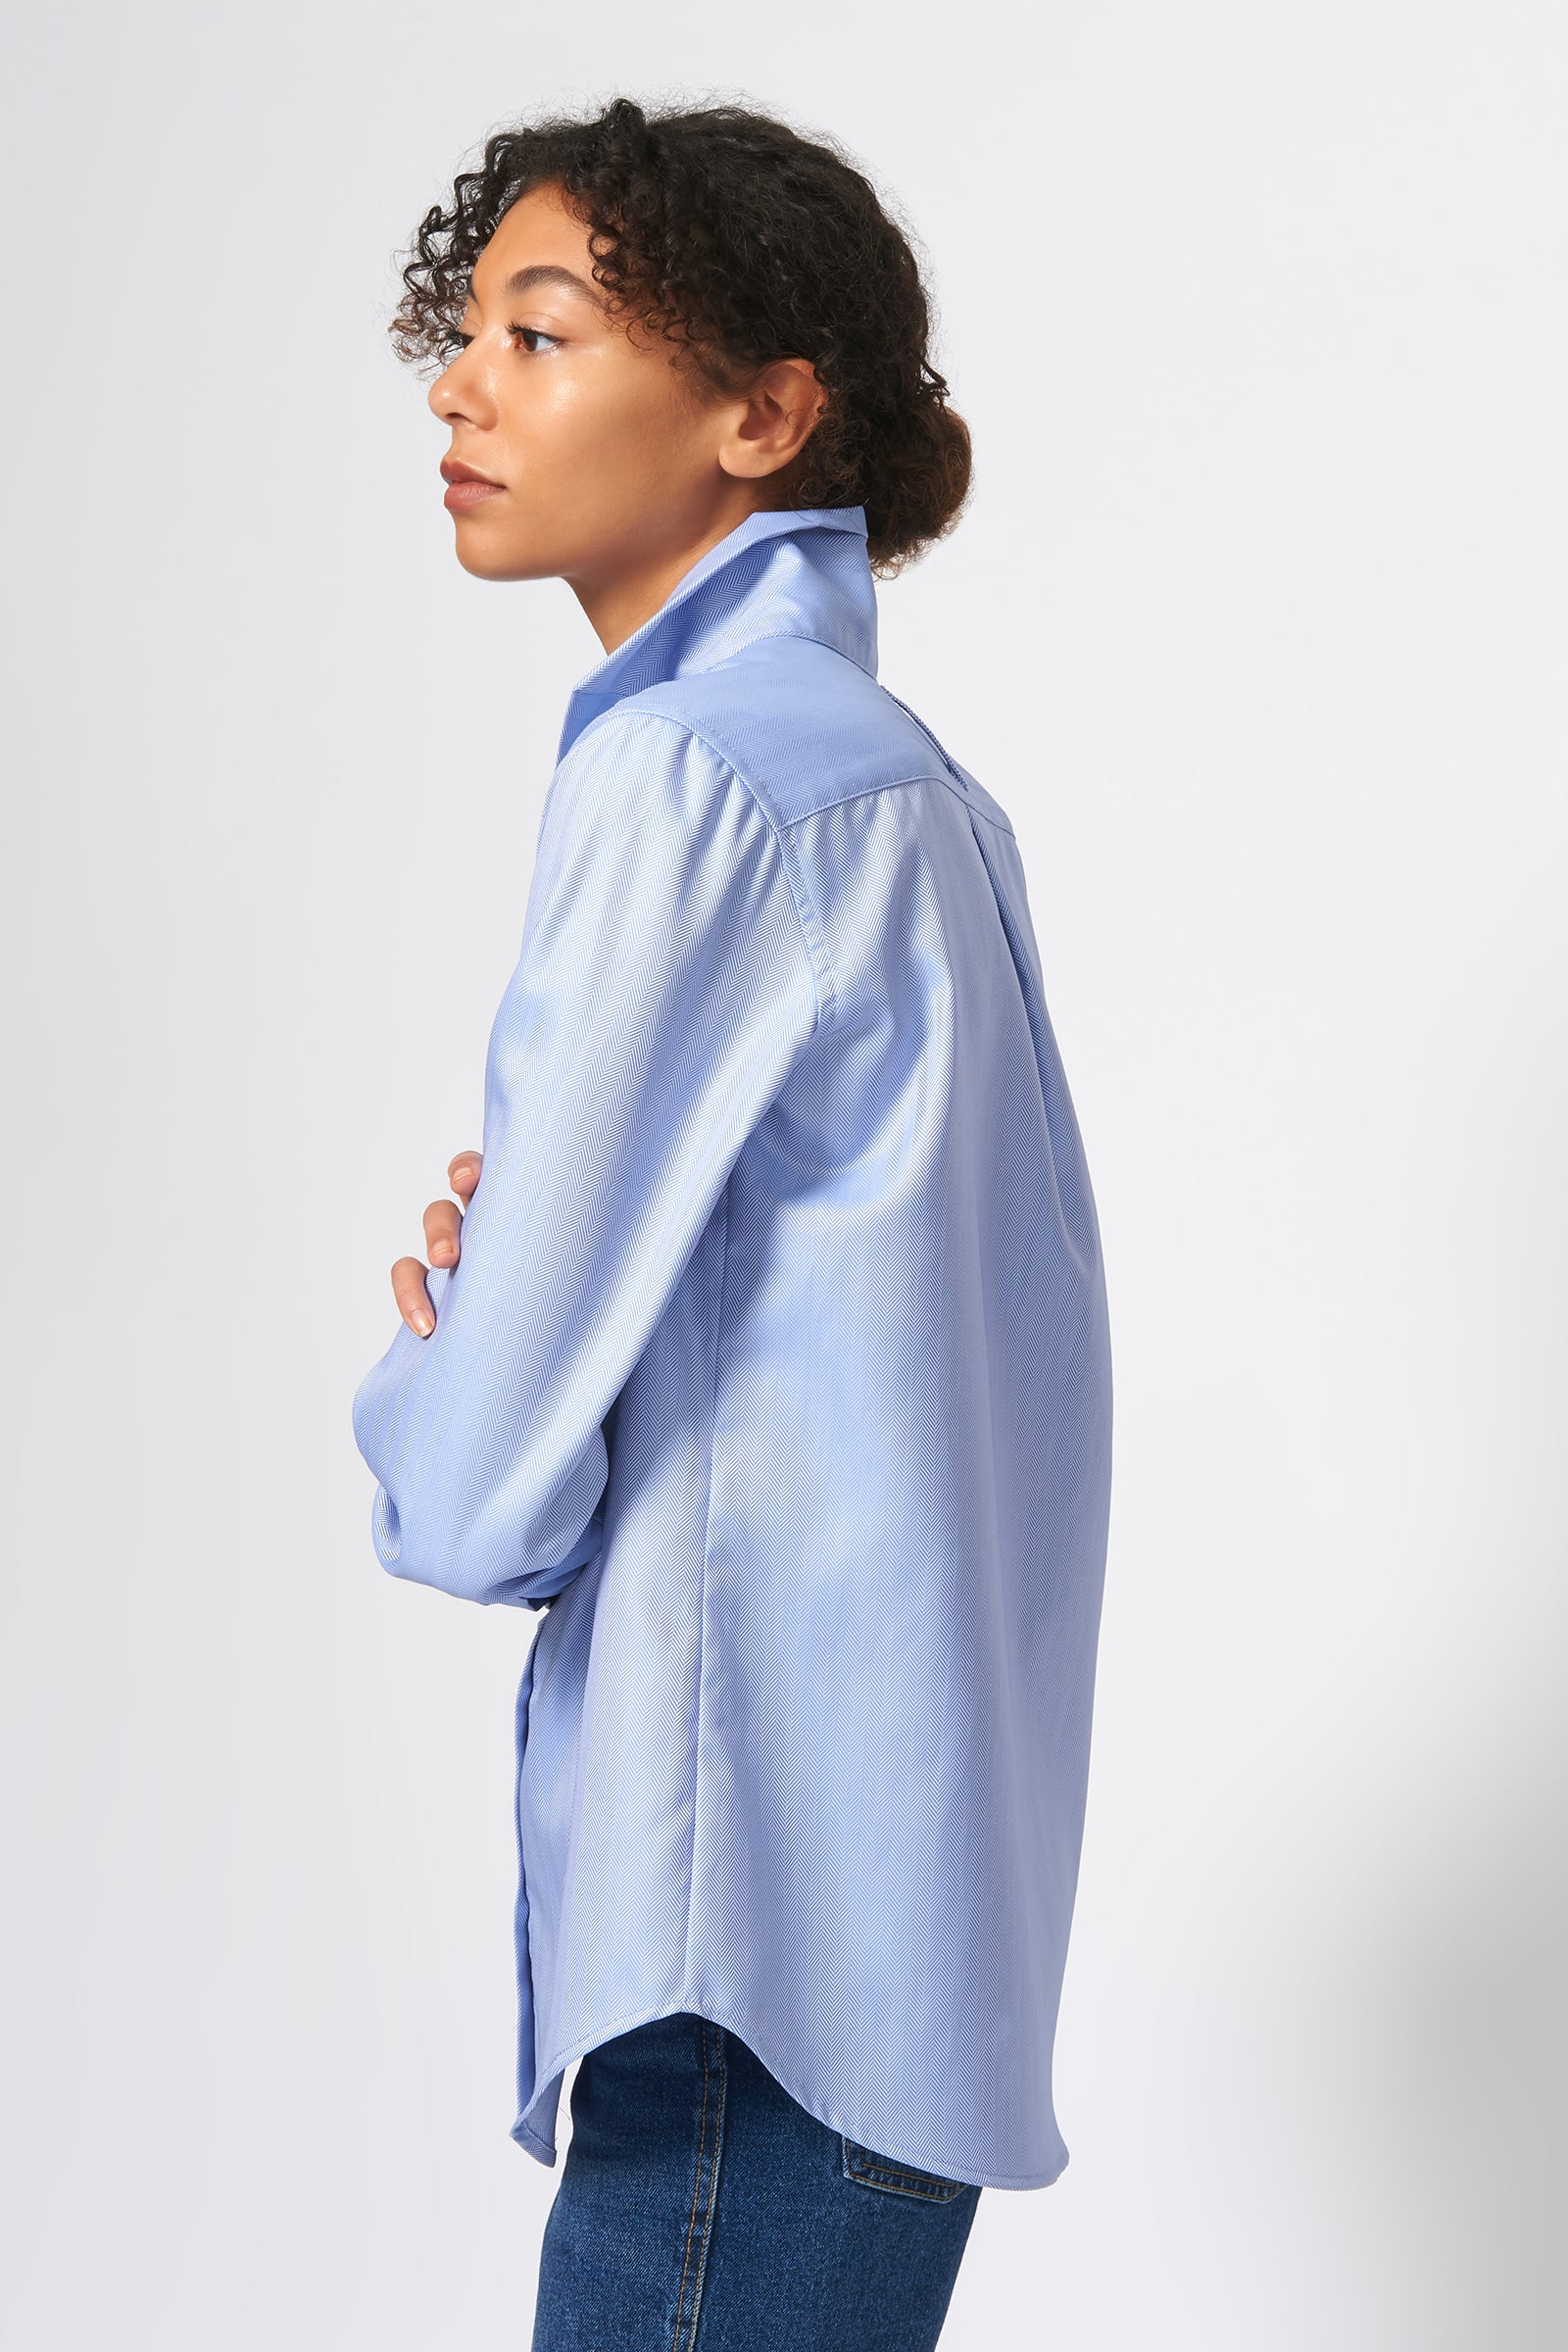 Kal Rieman Ginna Box Pleat Shirt in Denim Fine Herringbone on Model Full Side View